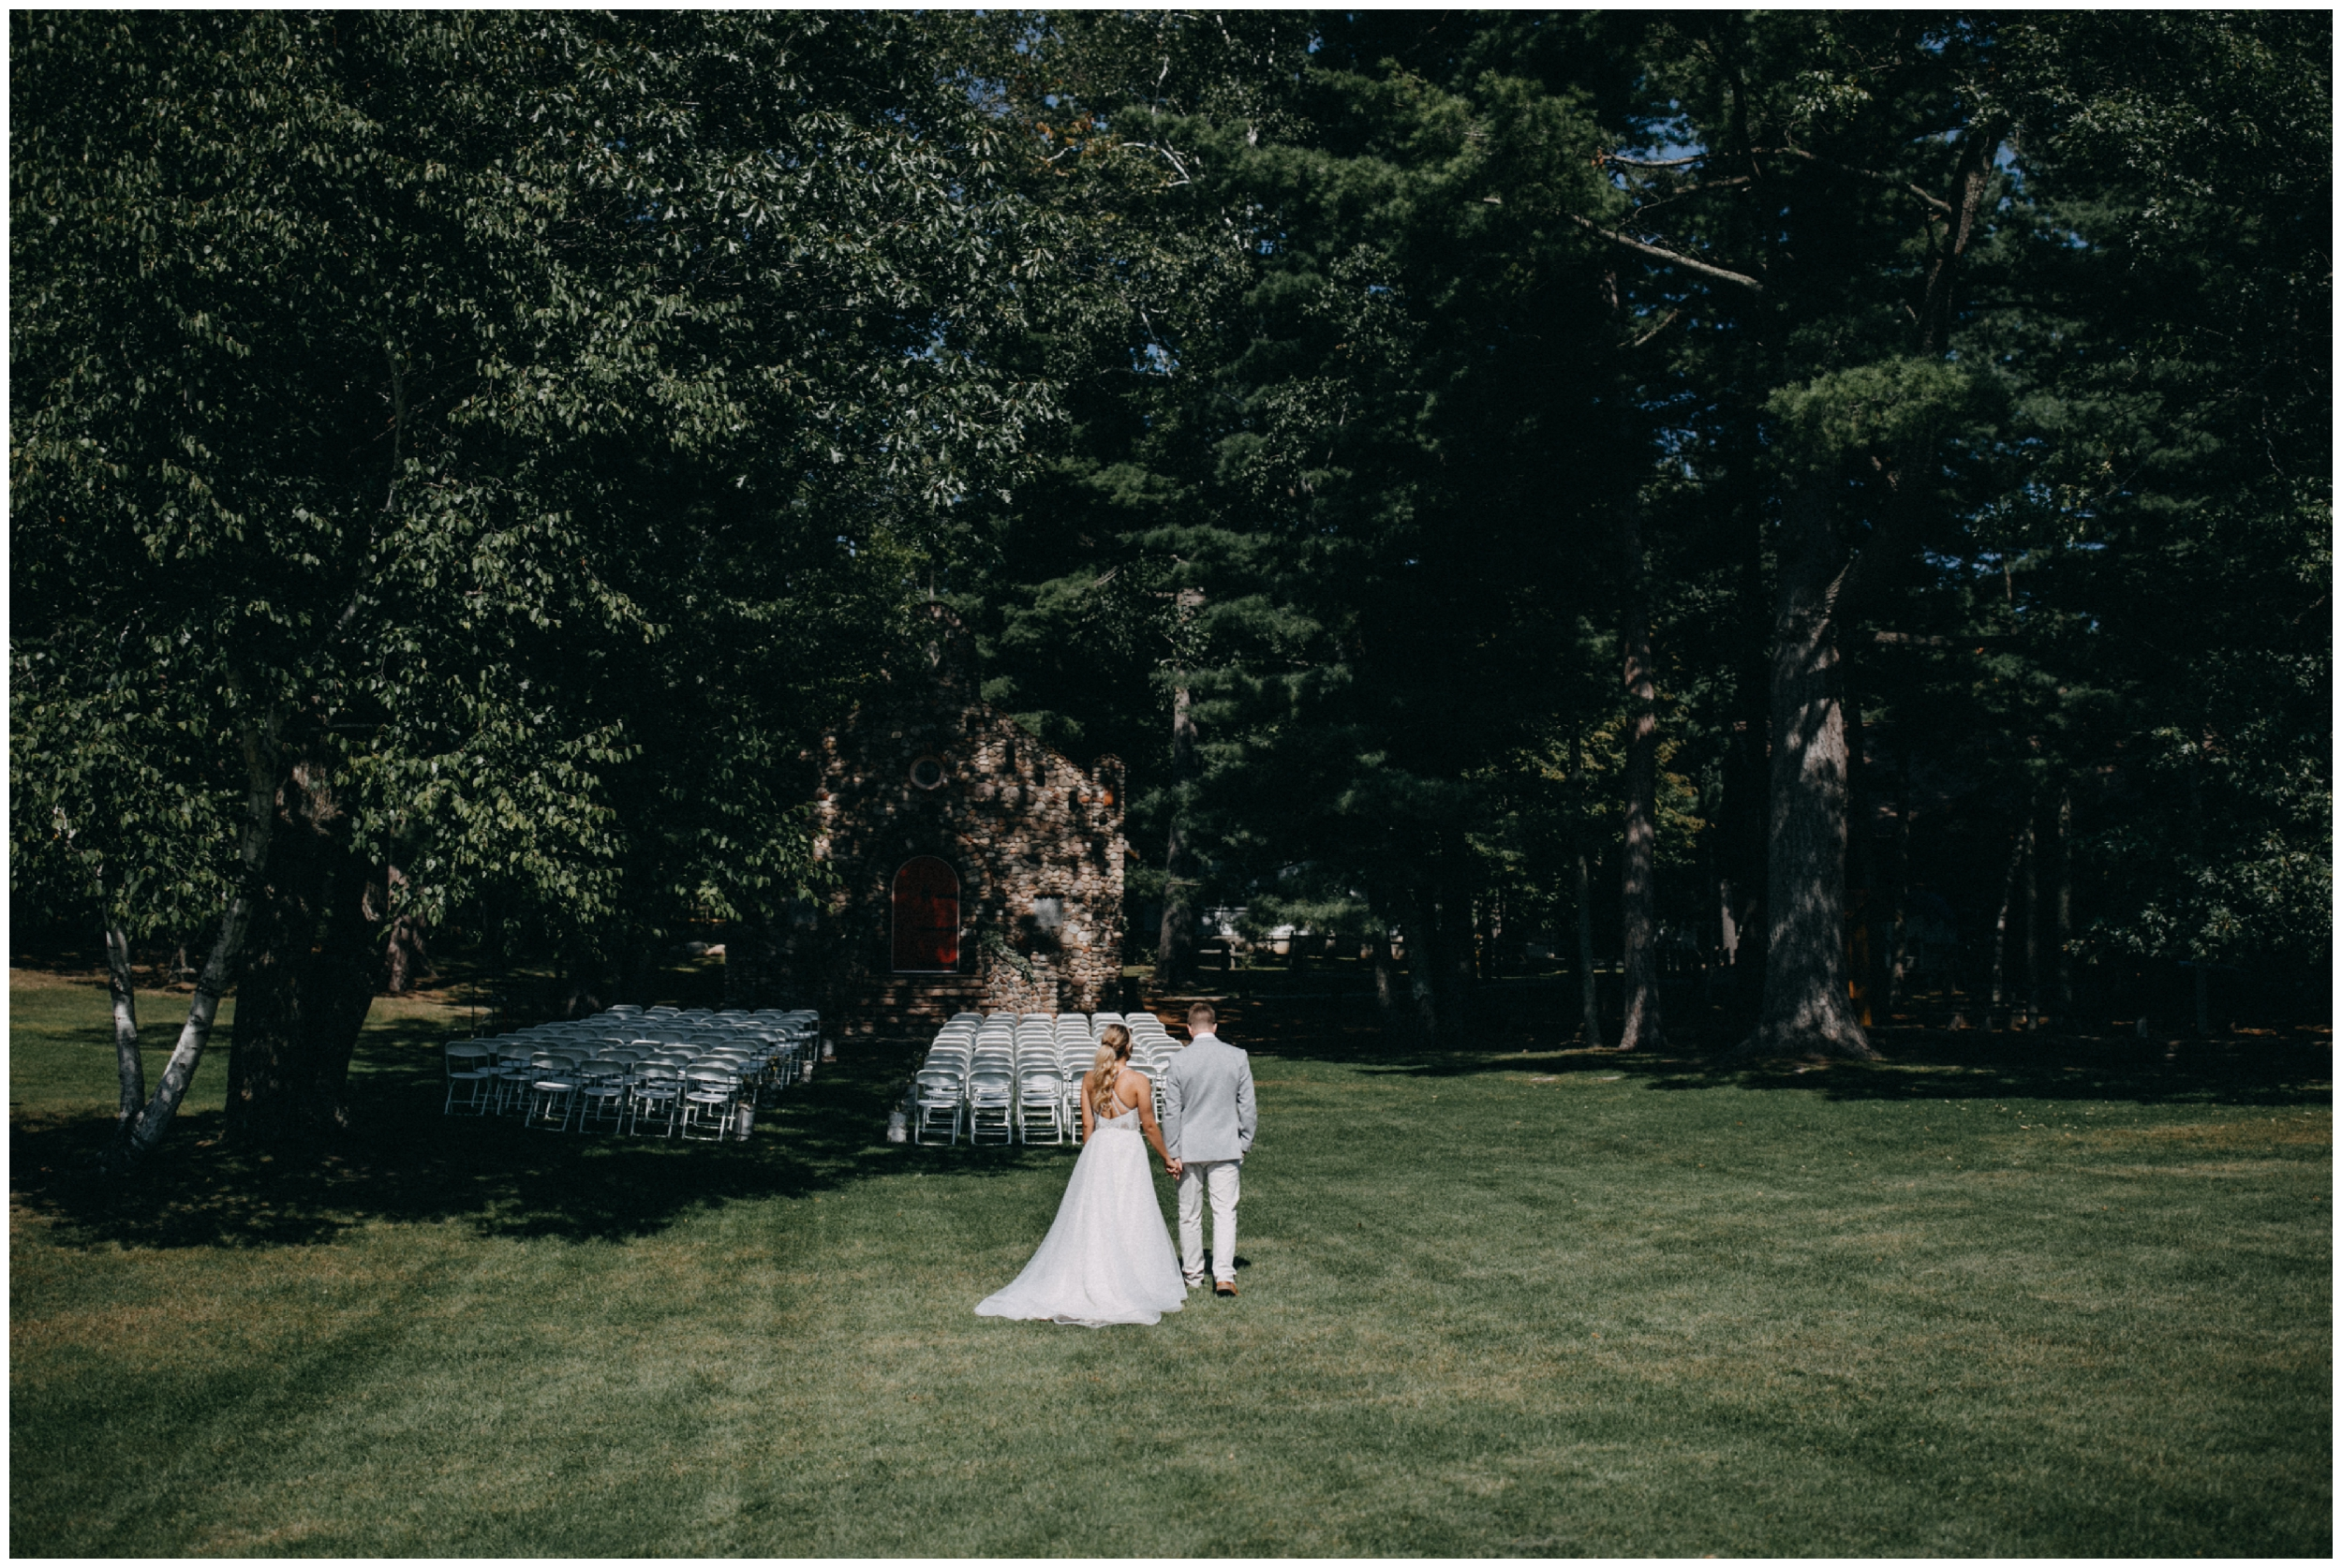 Summer wedding at Camp Foley in Pine River photographed by Britt DeZeeuw